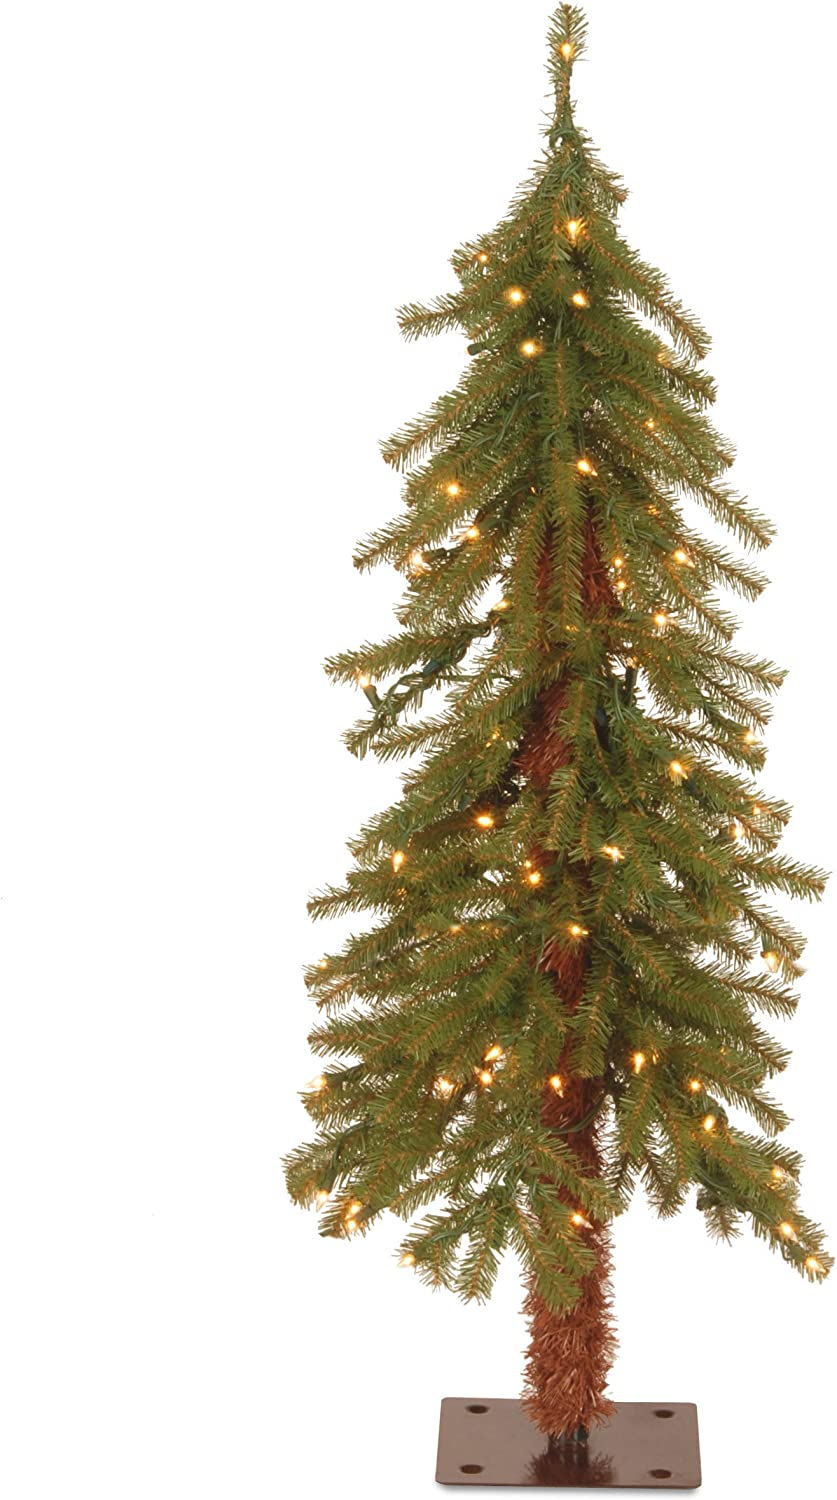 National Tree Company Pre-lit Artificial Christmas Tree | Includes Pre-strung White Lights and Stand | Hickory Cedar - 3 ft